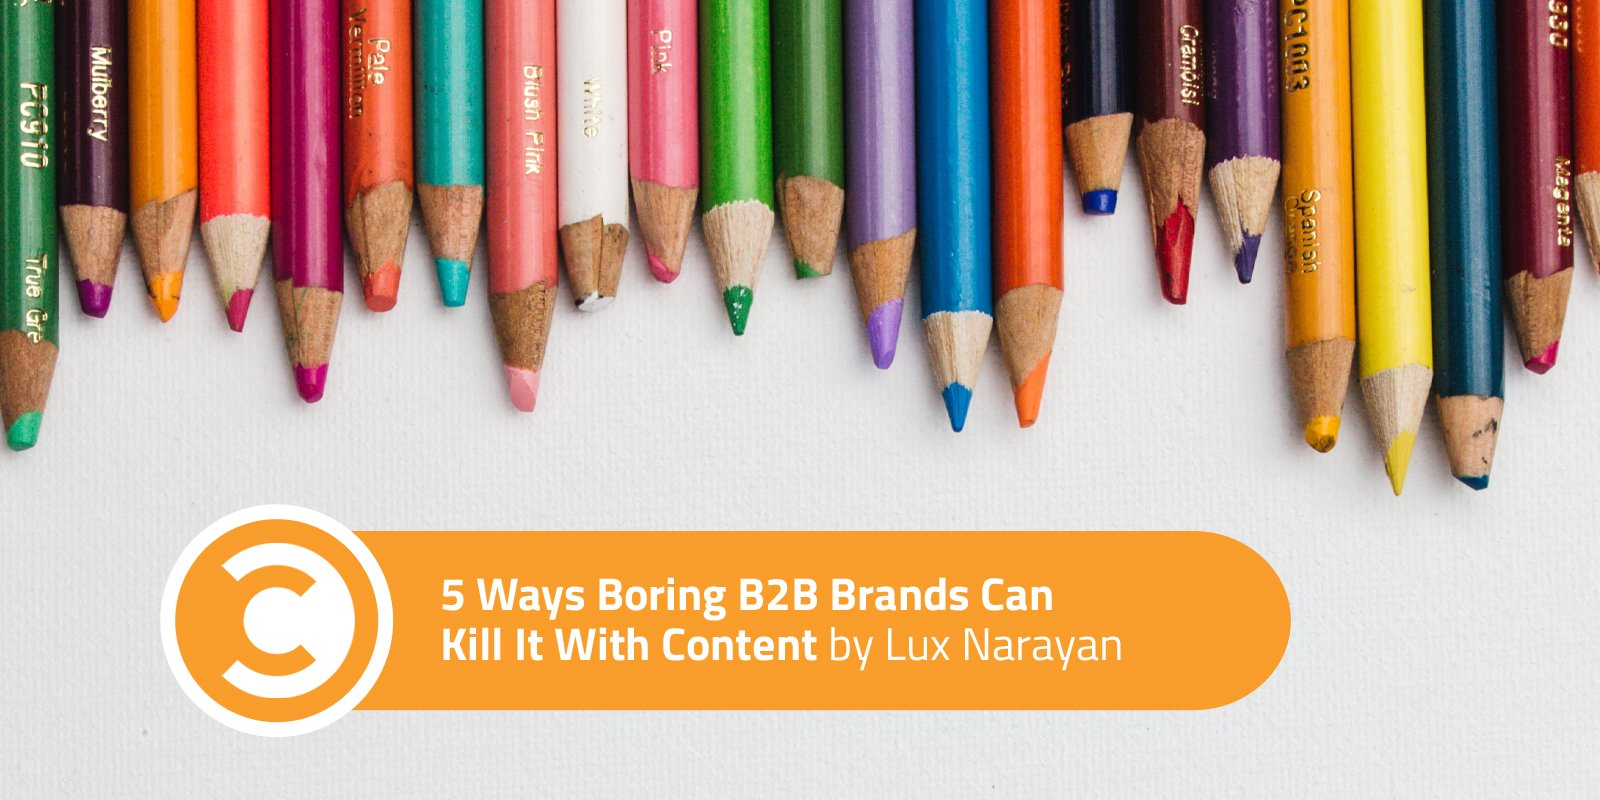 5 Ways Boring B2B Brands Can Kill It With Content